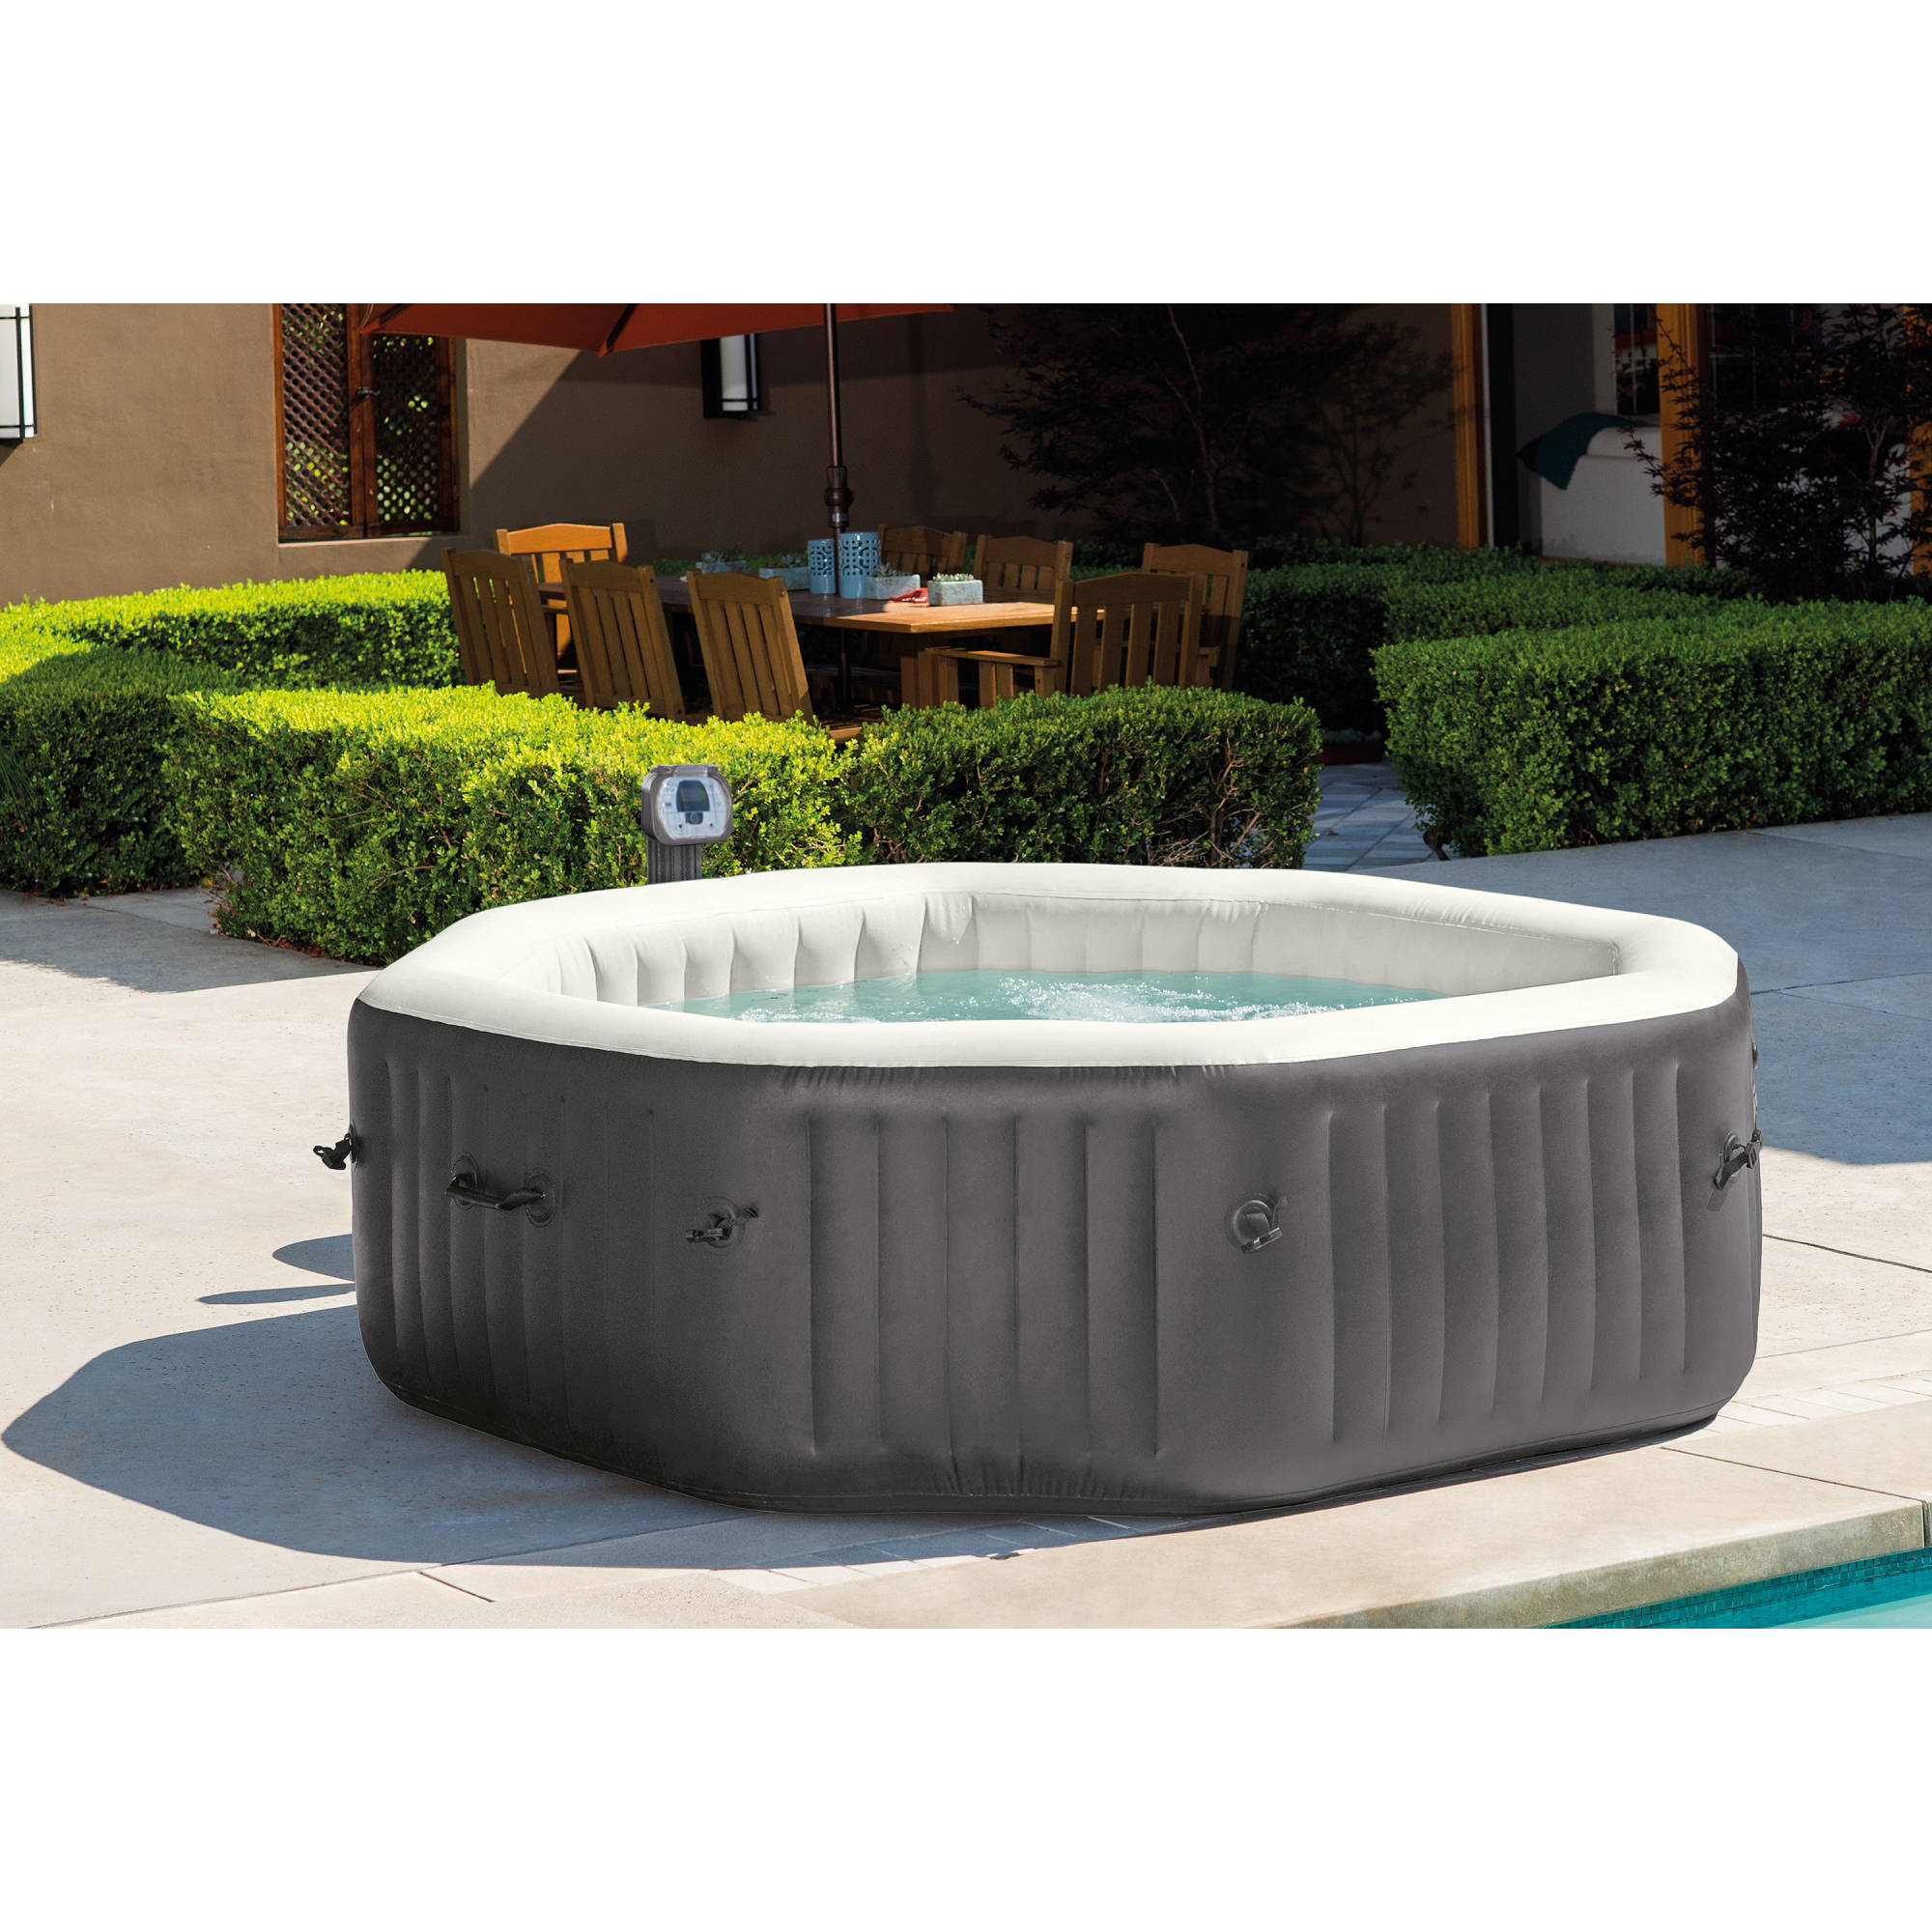 Intex 140 Bubble Jets 6 Person Octagonal Portable Inflatable Hot Tub